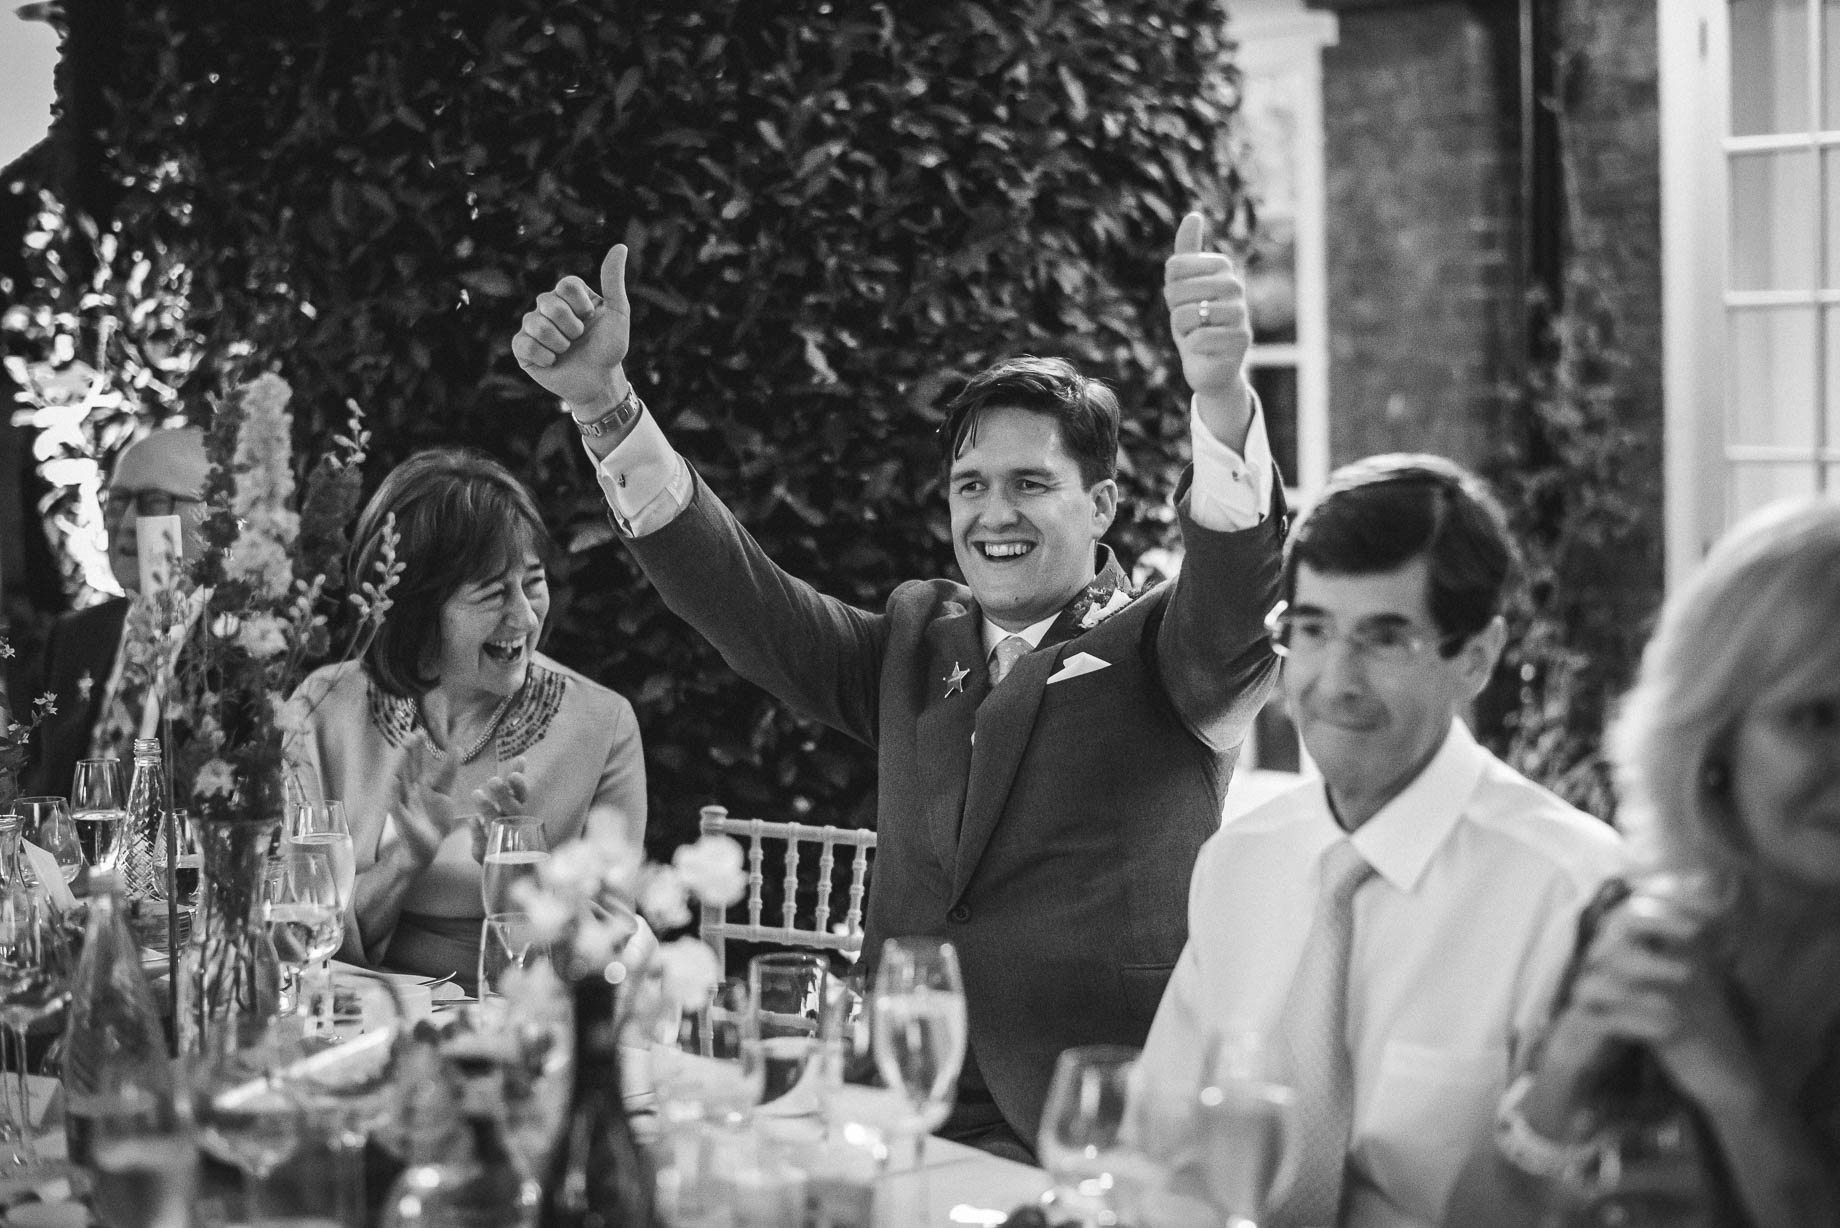 London wedding photography - Claire and JW - Guy Collier Photography (131 of 153)